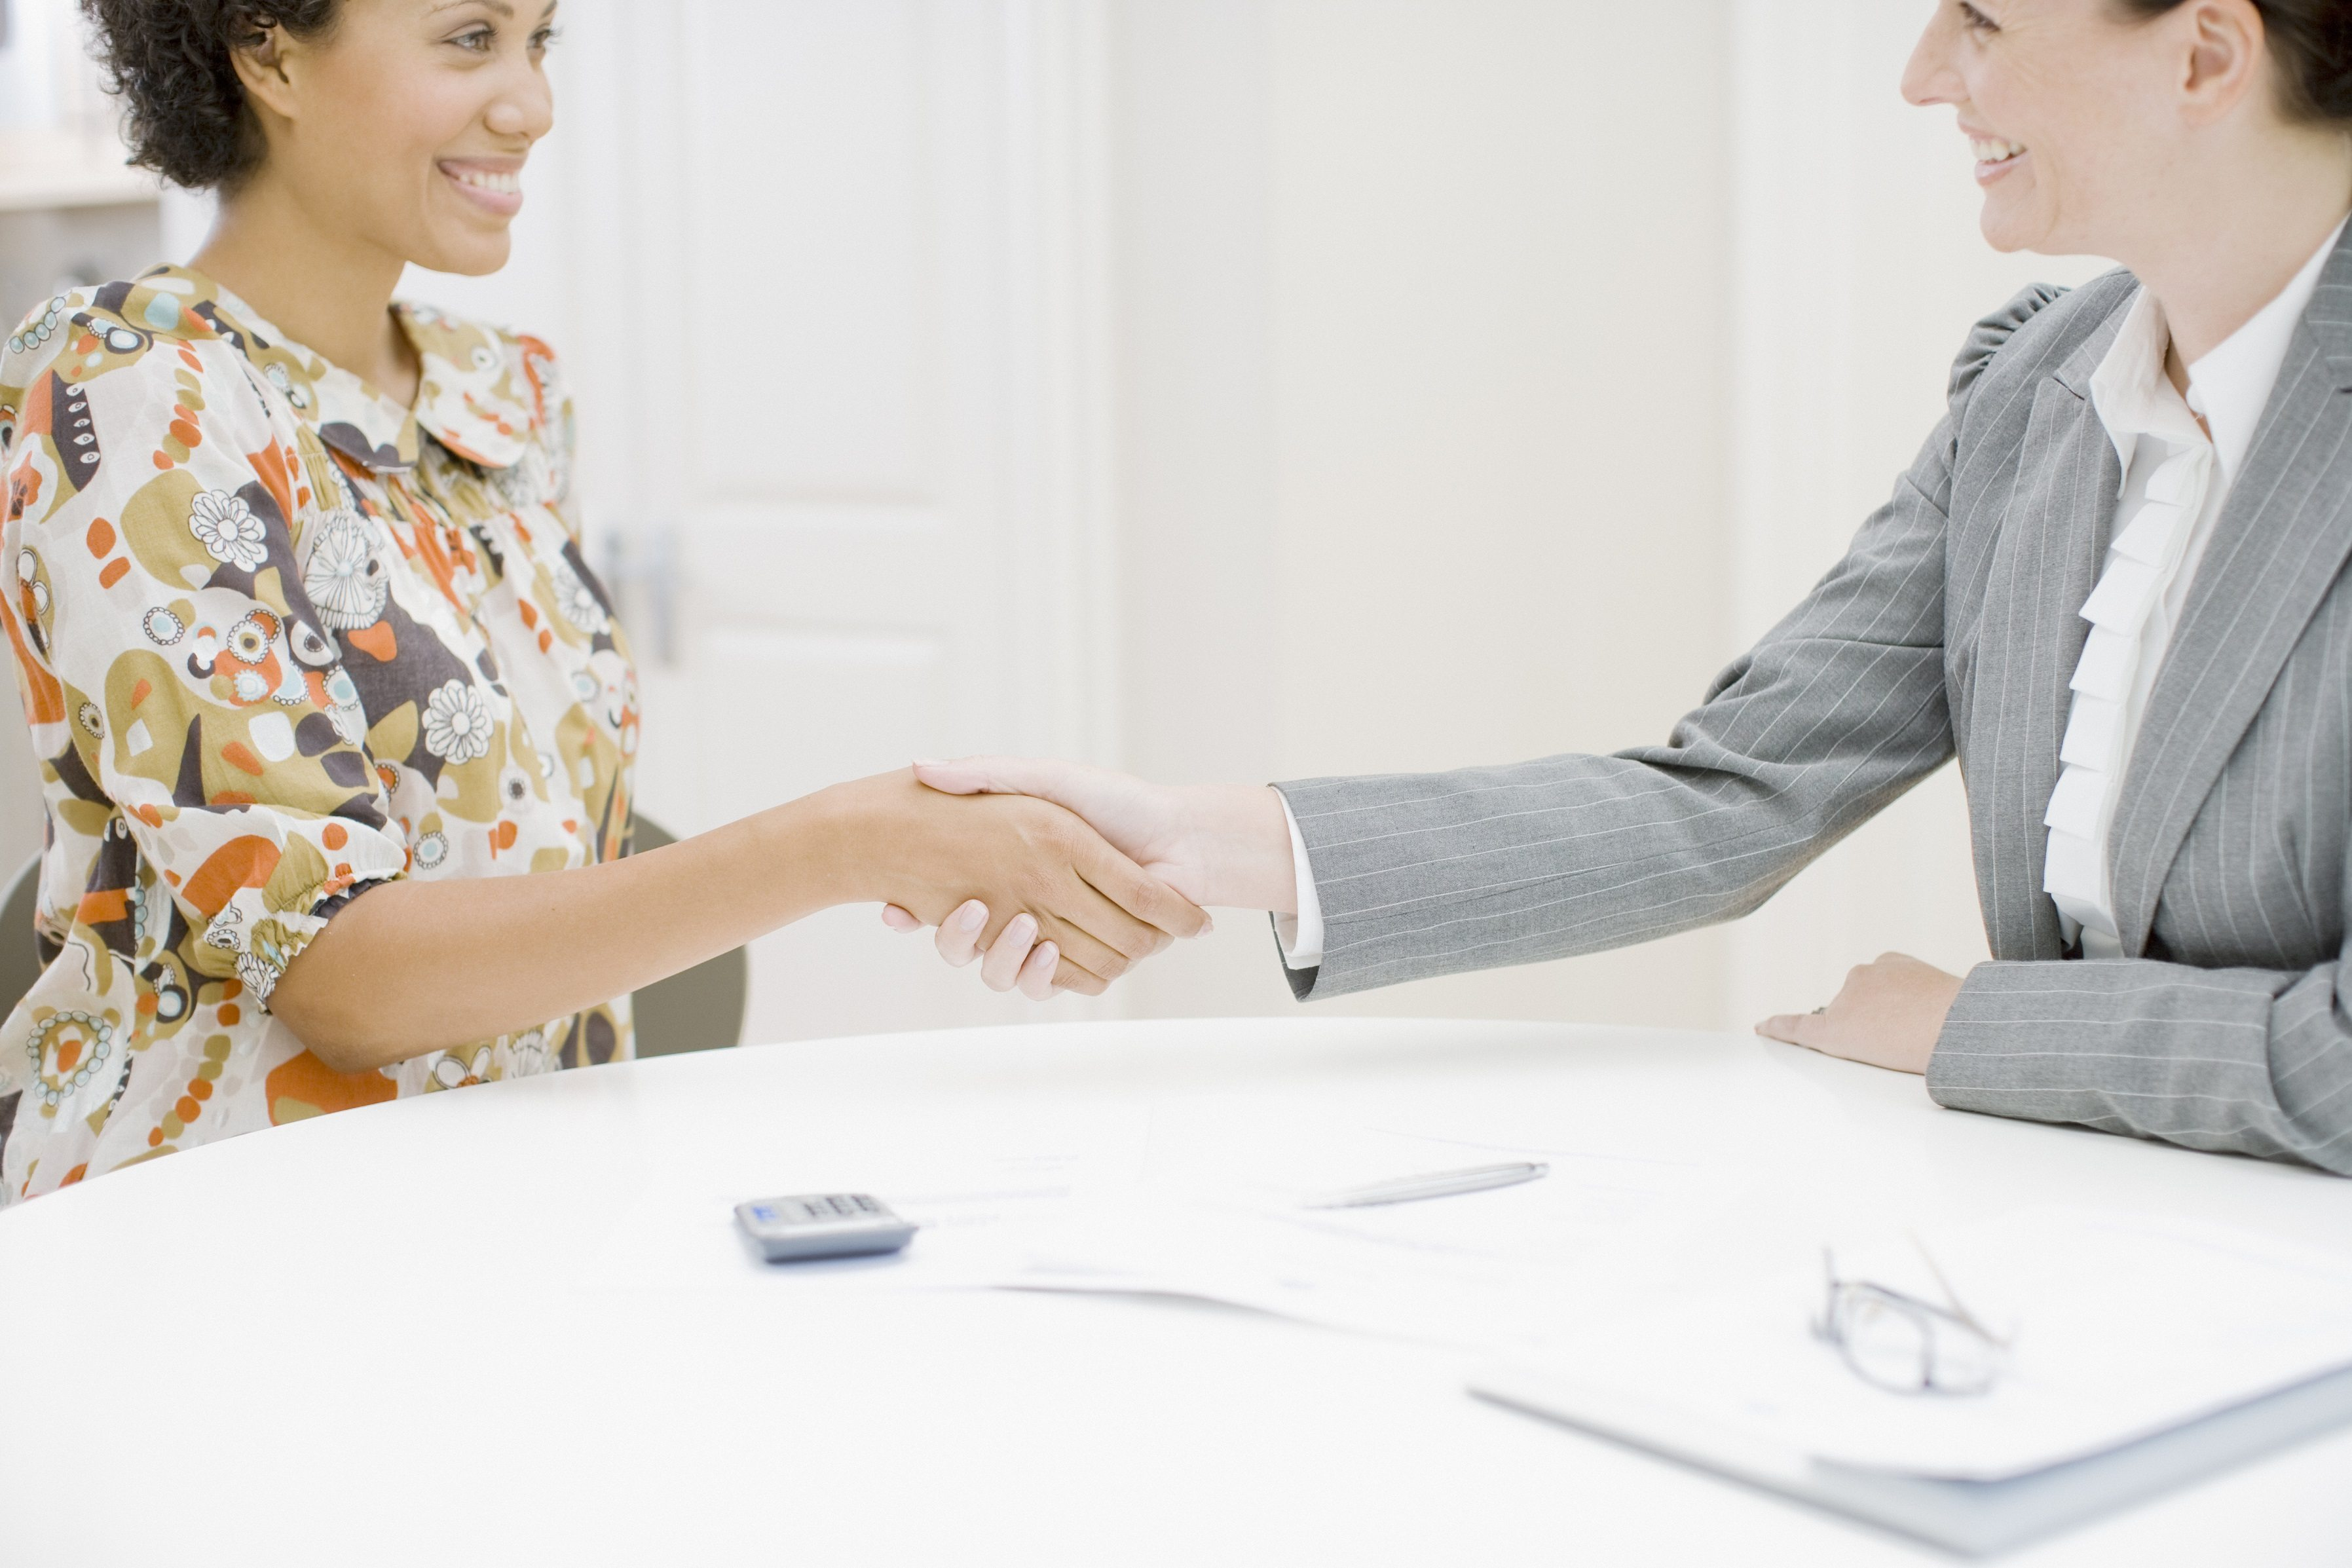 Sales woman shaking hands